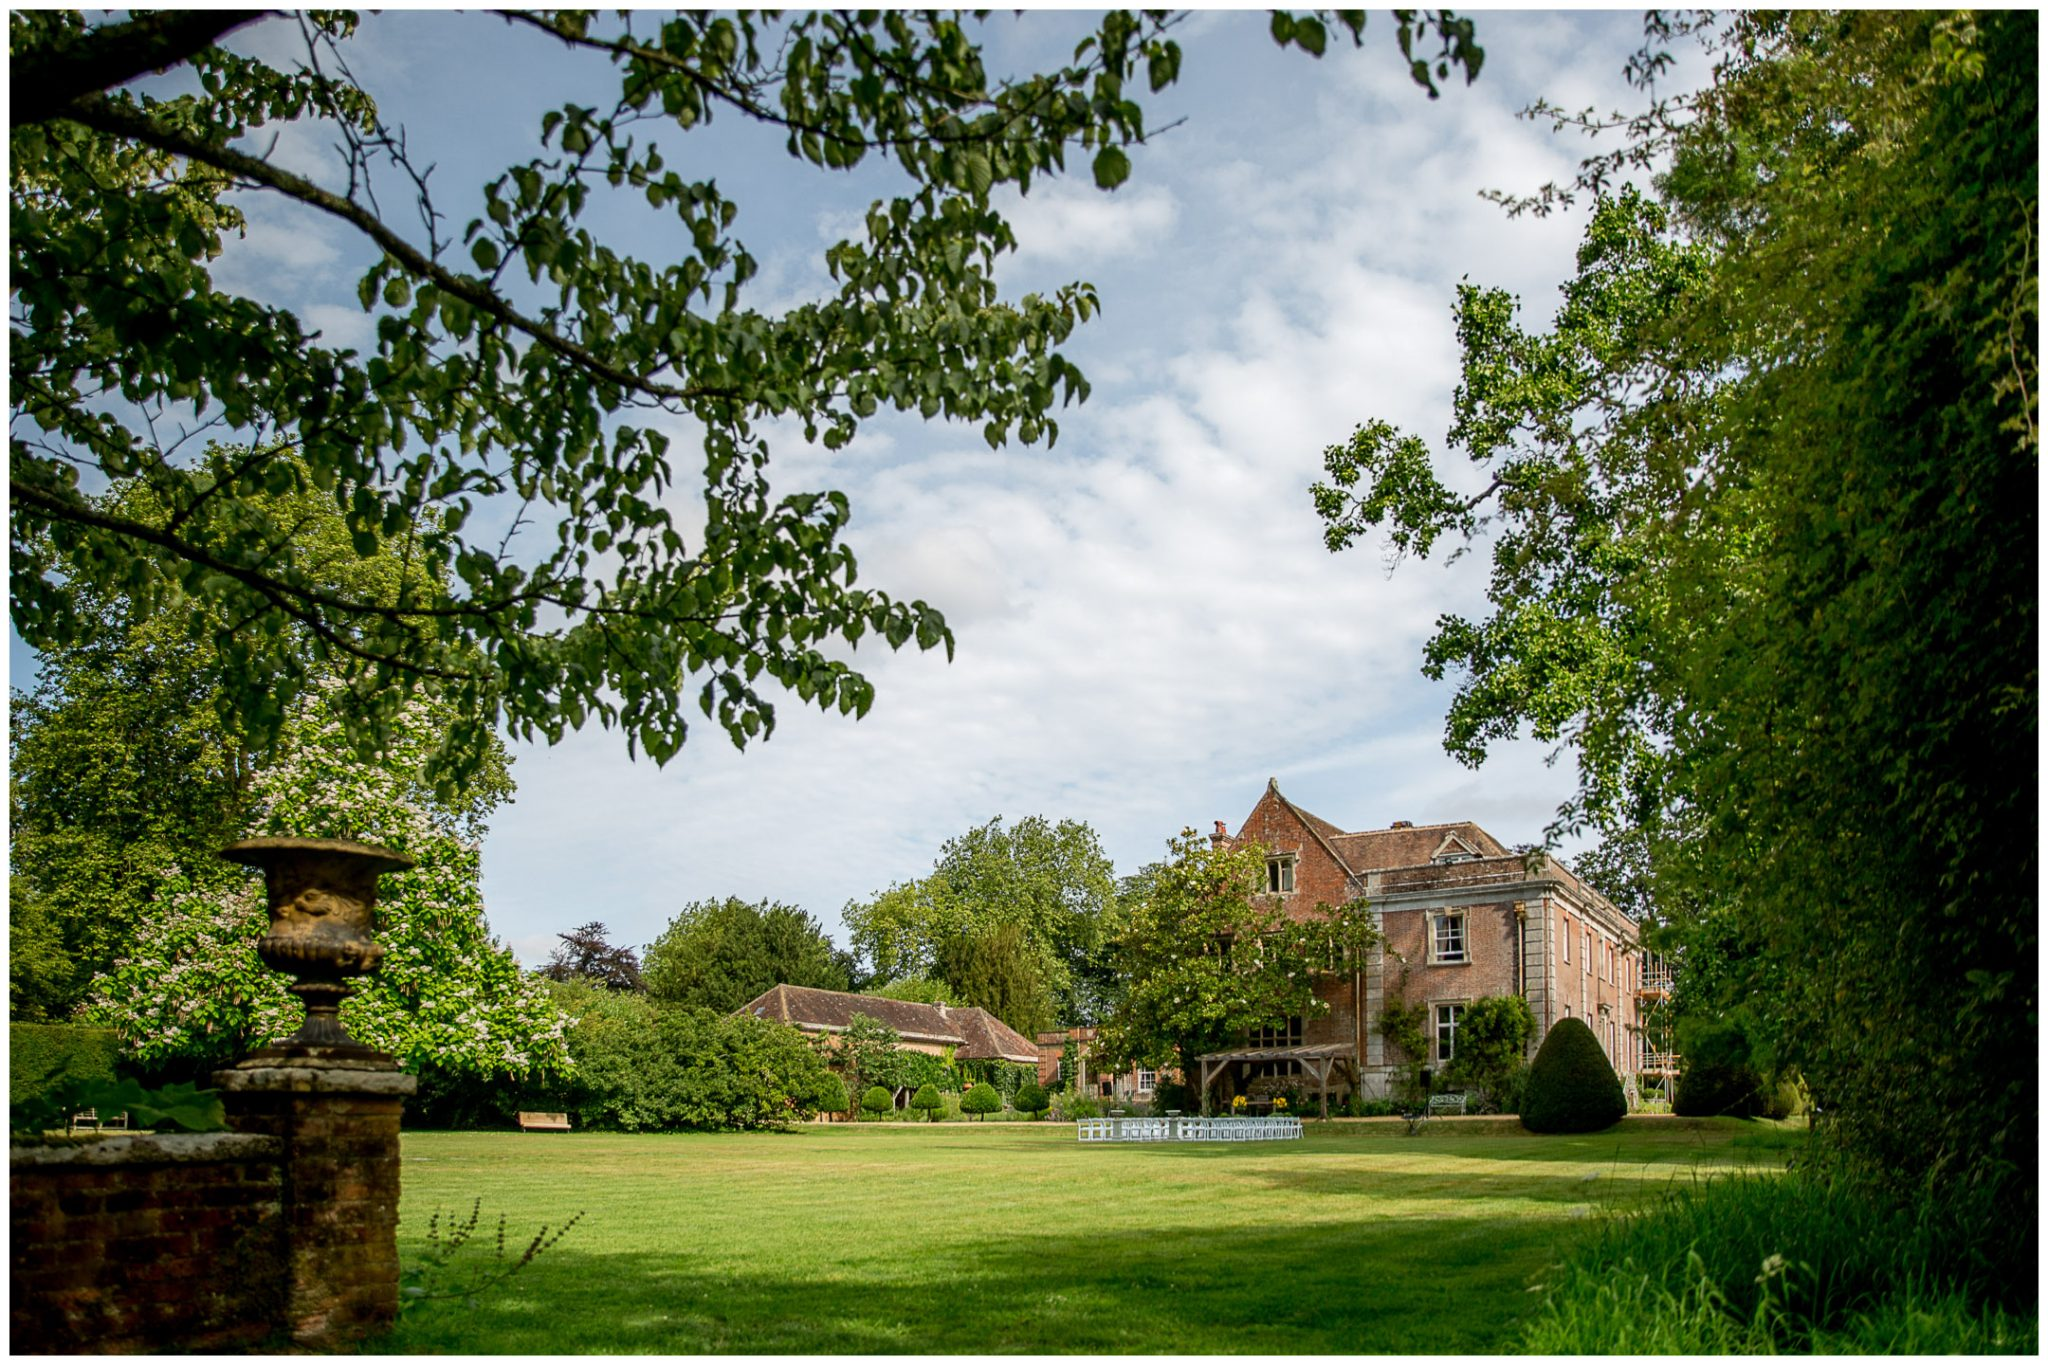 View of the Deans Court house and grounds from the rear set up for an outdoor marriage ceremony